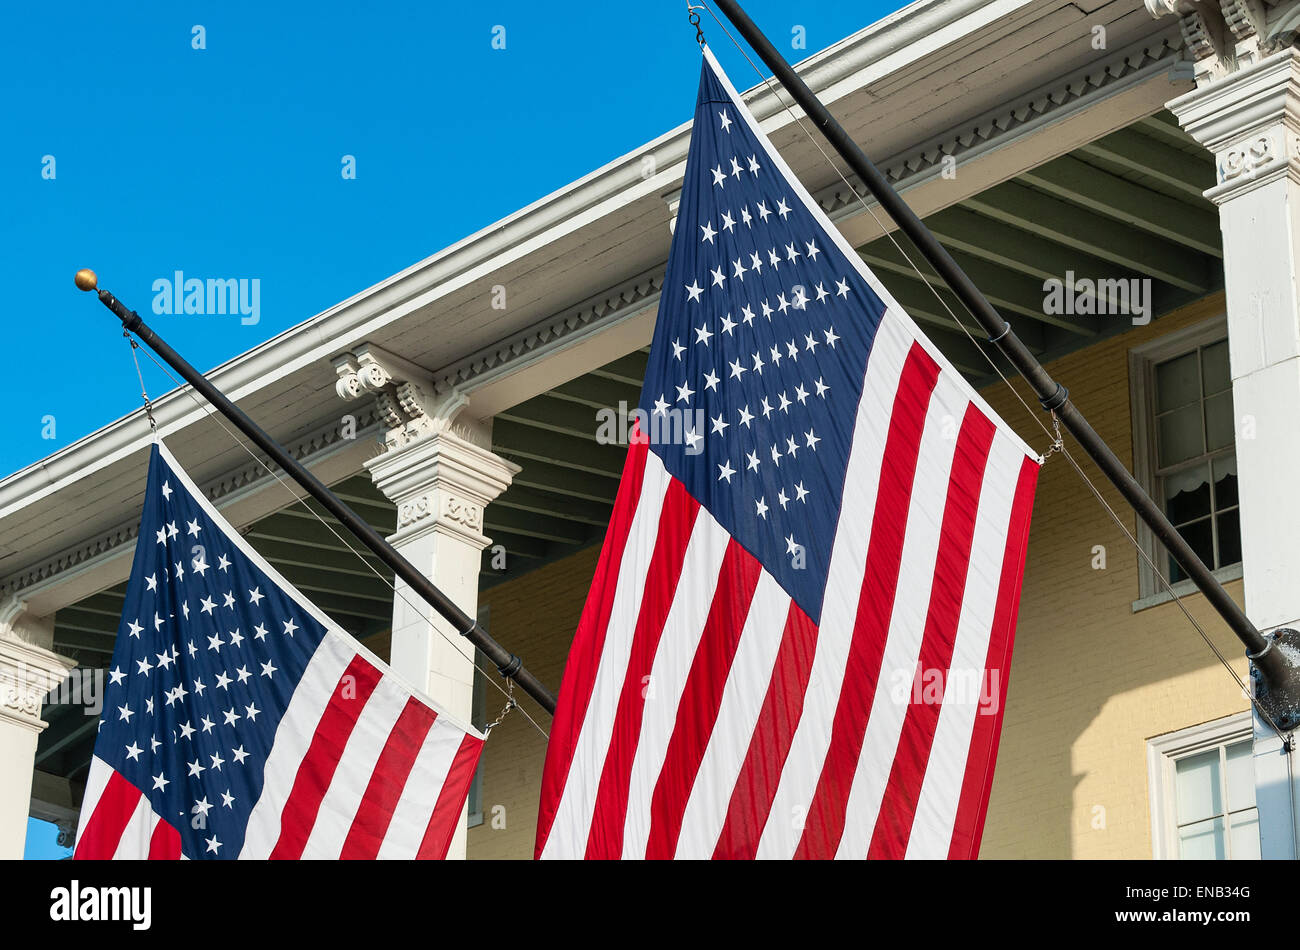 Detail of American flags on the exteruor of Congrass Hall, Cape May, New Jersey, USA. - Stock Image